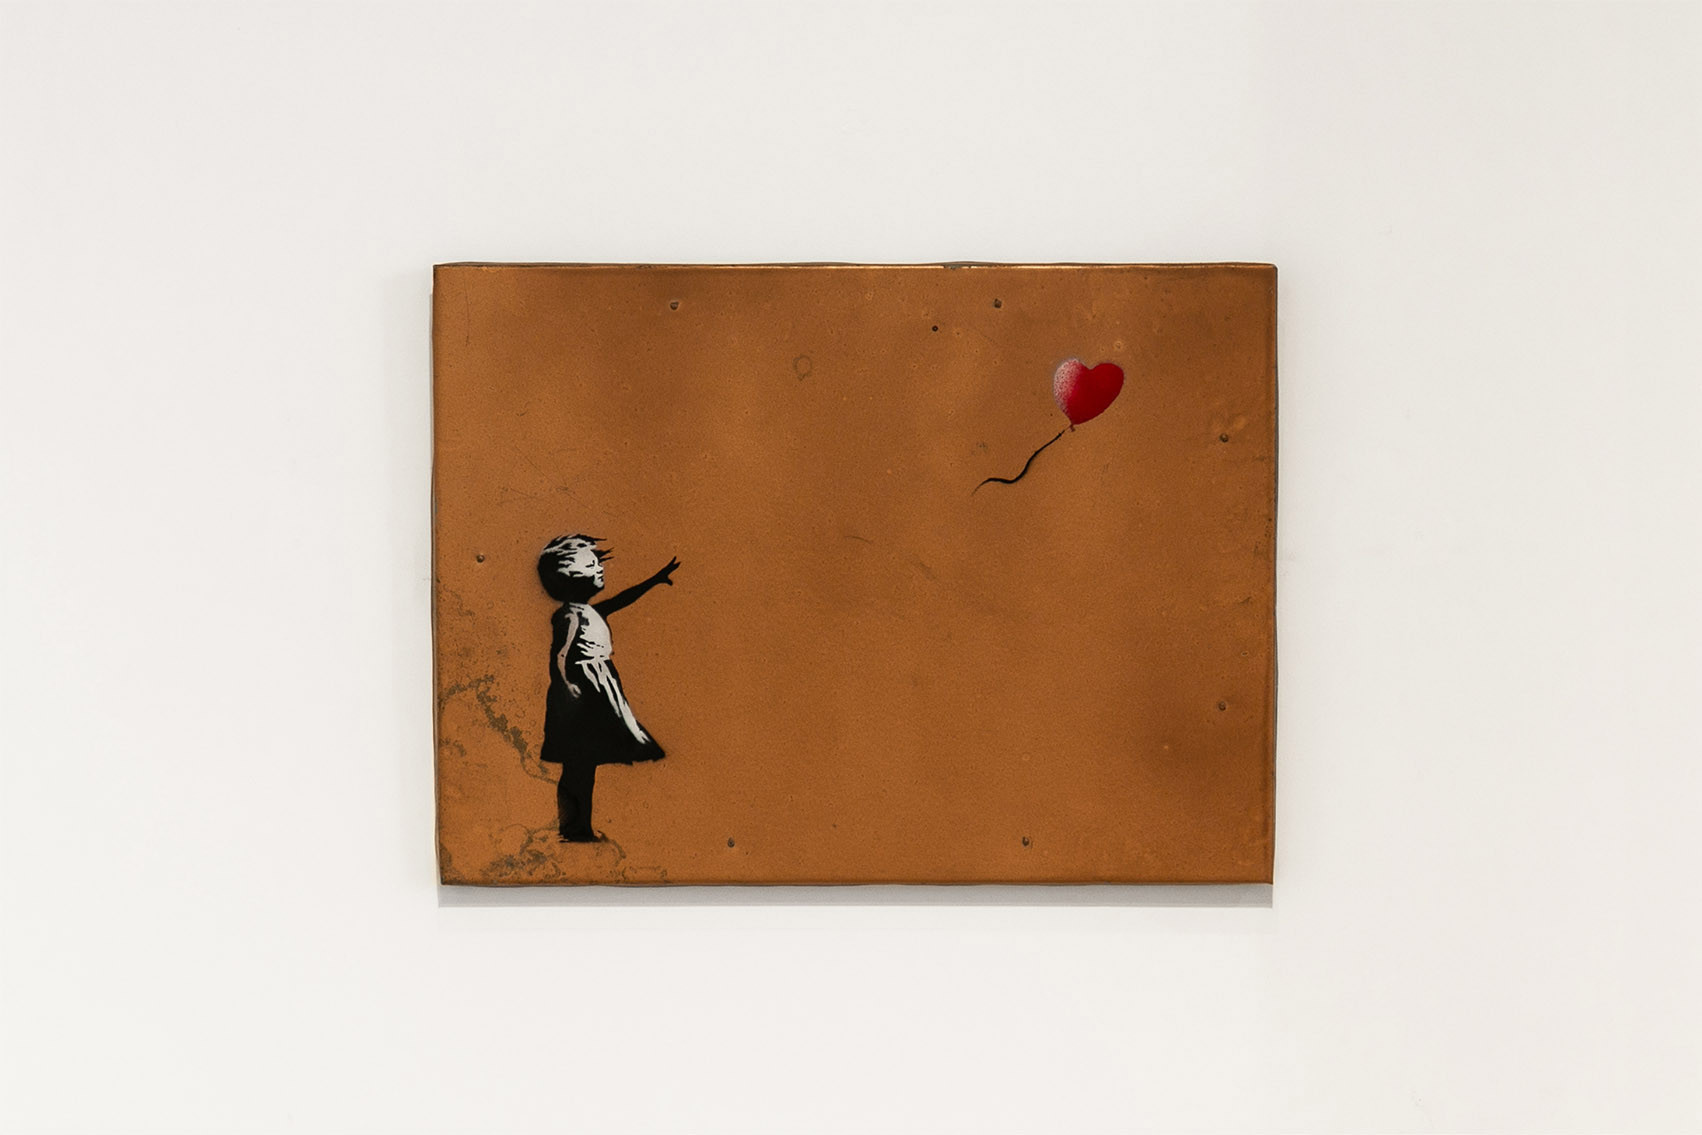 https---hypebeast.com-image-2018-07-banksy-greatest-hits-exhibition-lazinc-london-11